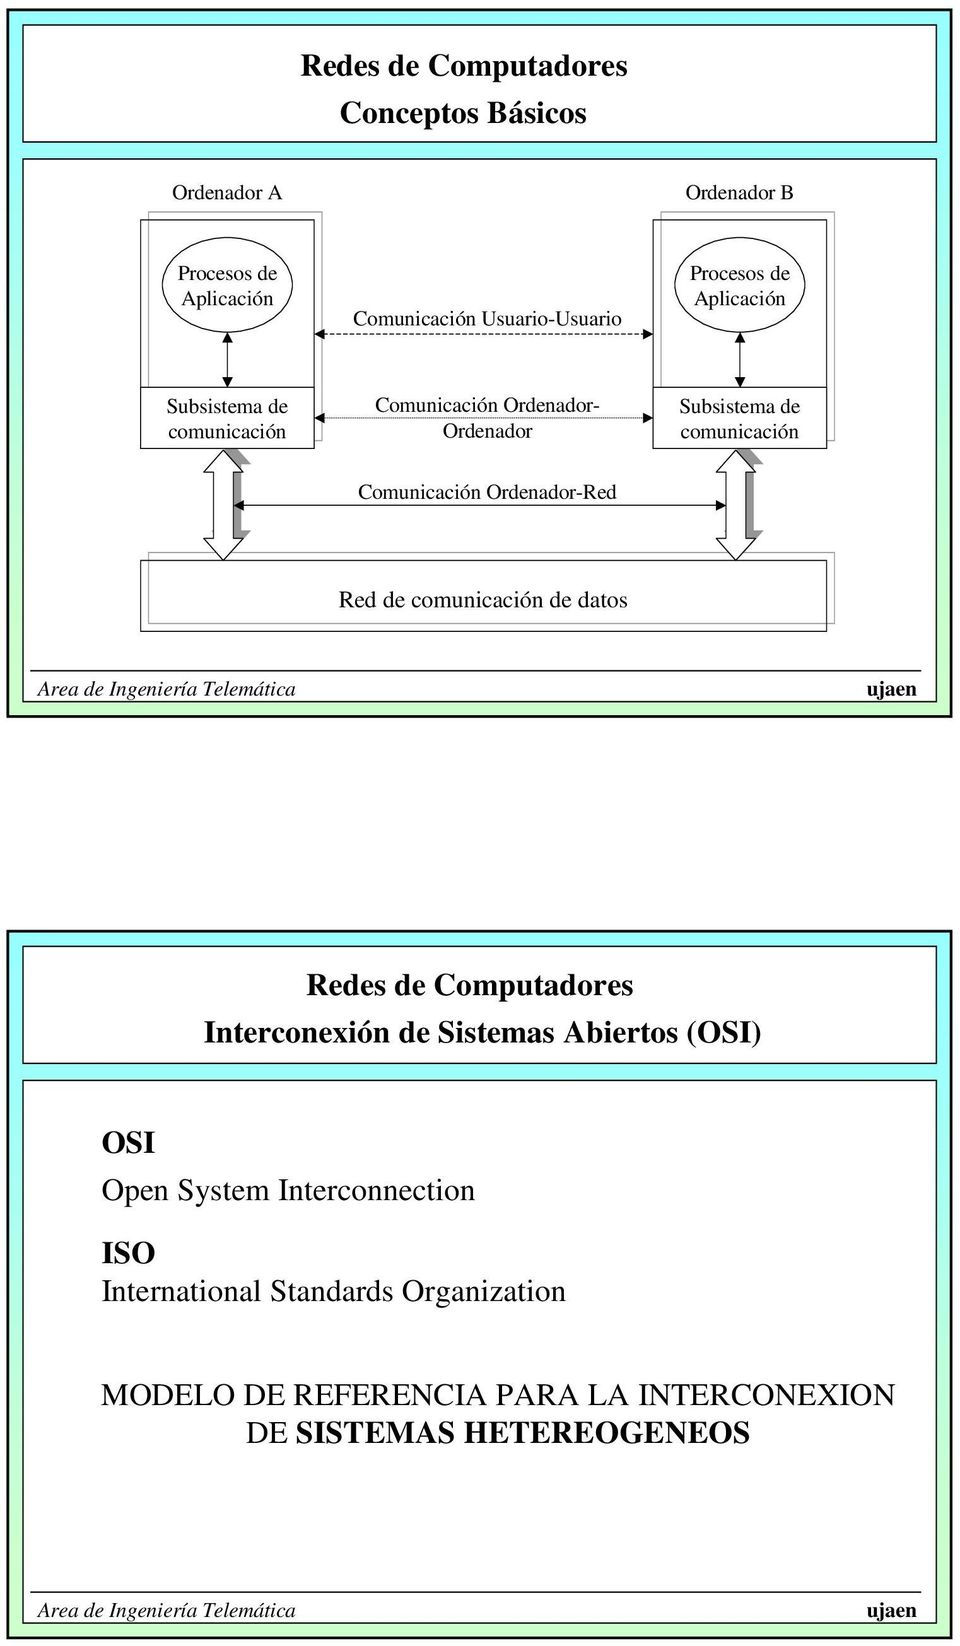 comunicación Comunicación Ordenador-Red Red de comunicación de datos OSI Open System Interconnection